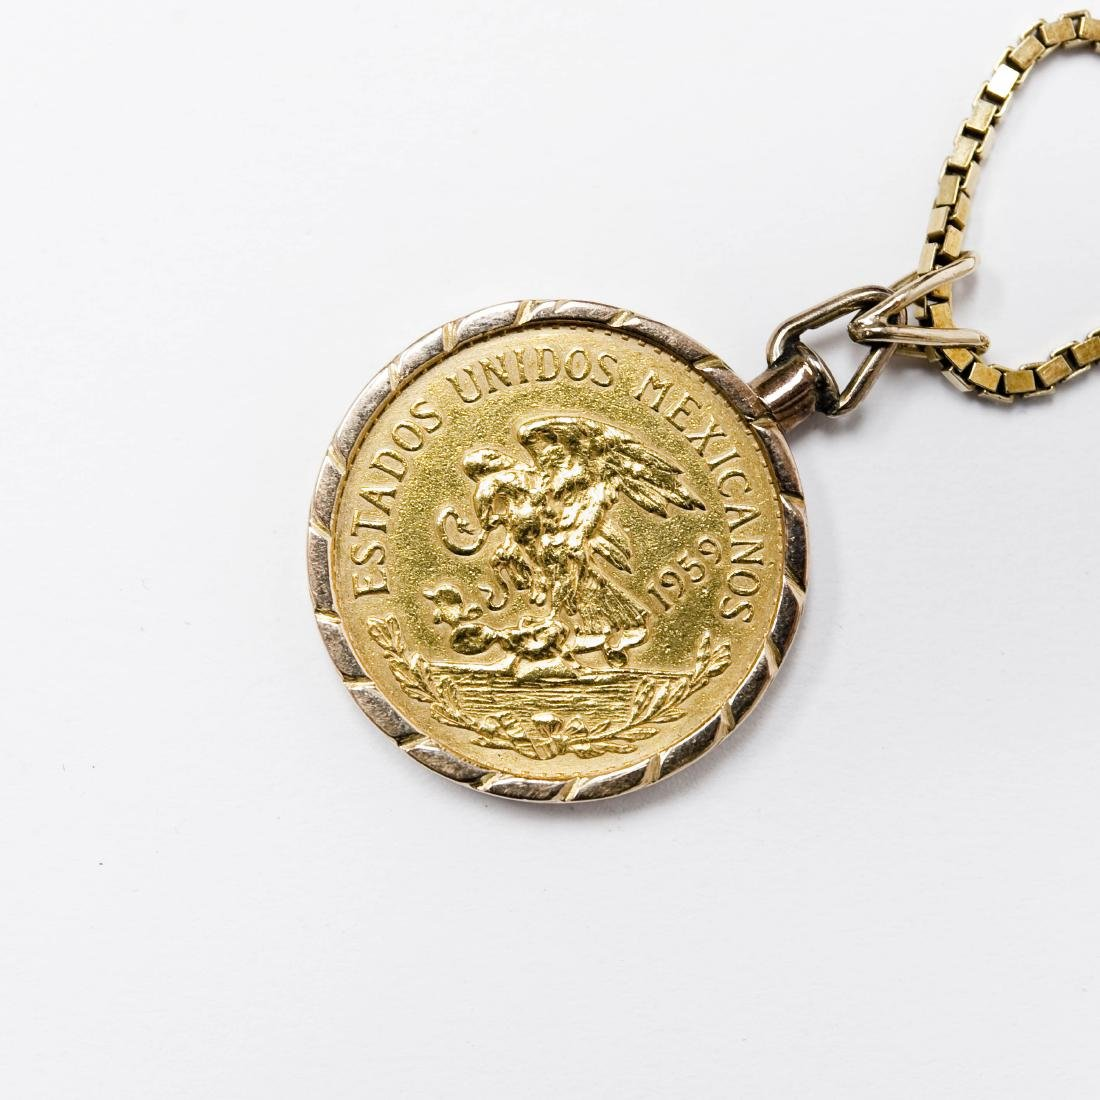 1959 Mexico 20 Pesos Gold Coin with Chain.